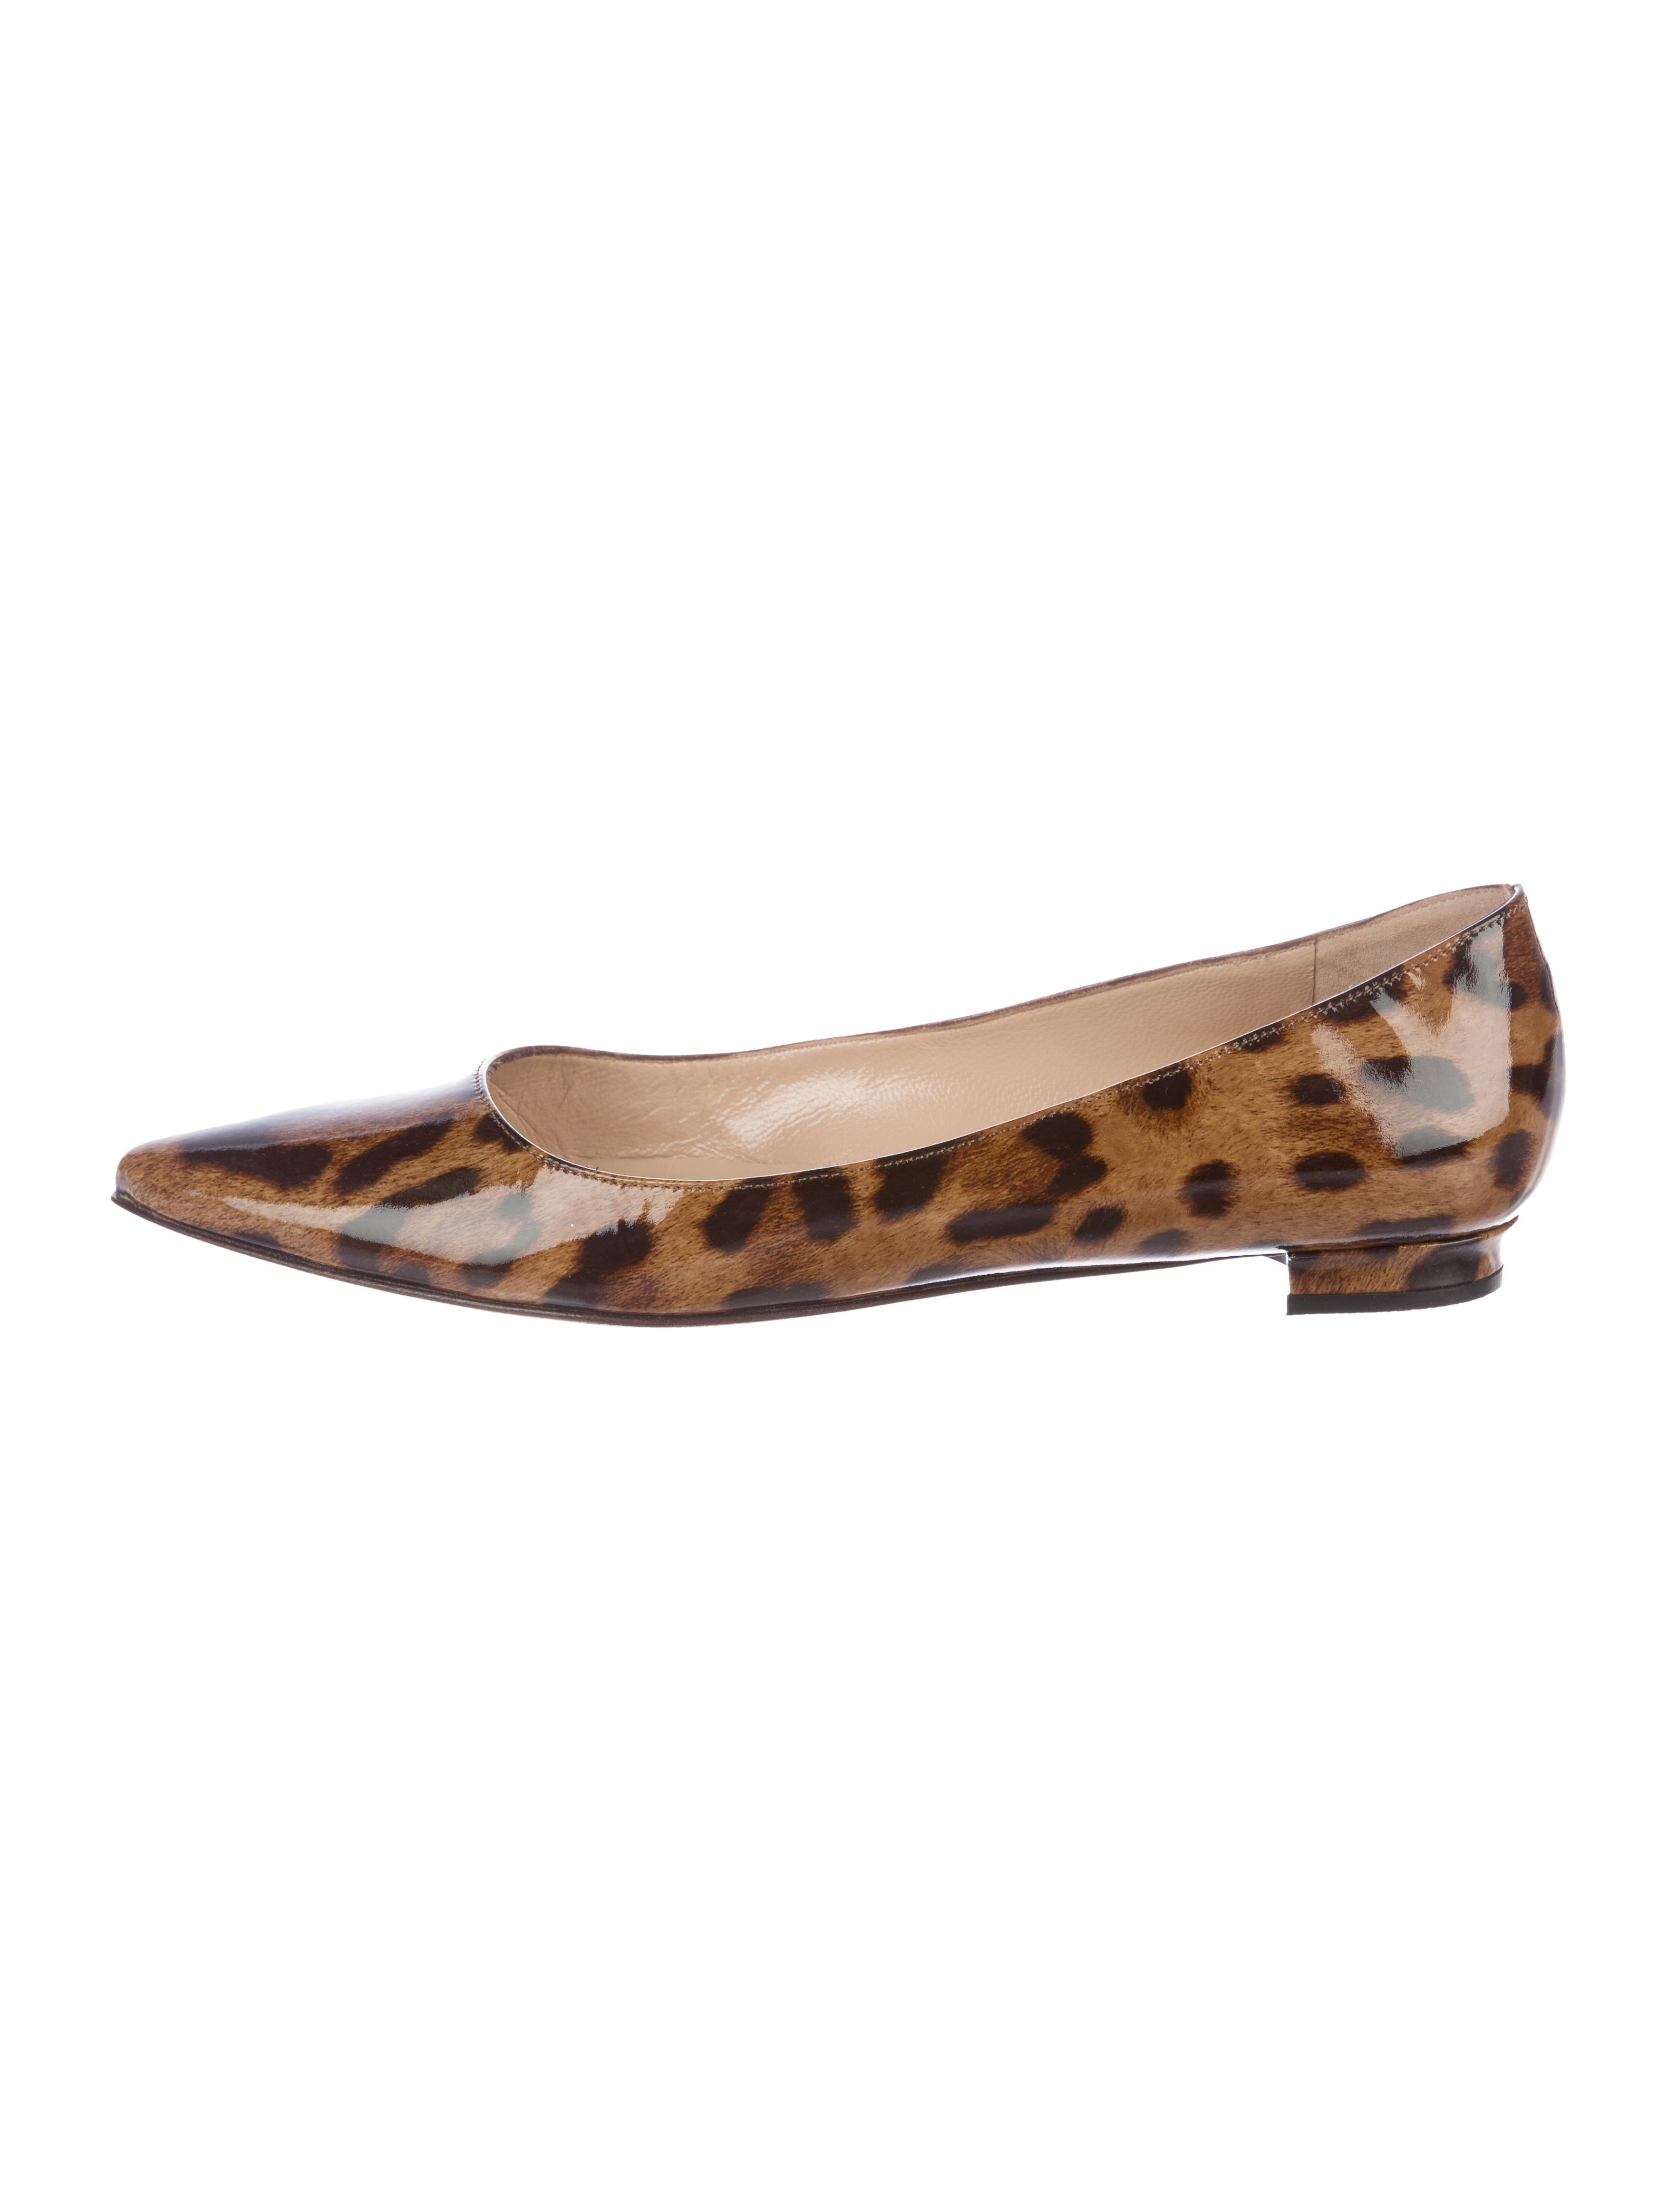 Manolo Blahnik Titto Patent Leather Flats w/ Tags cheap wholesale price affordable online Bkobuc5ow